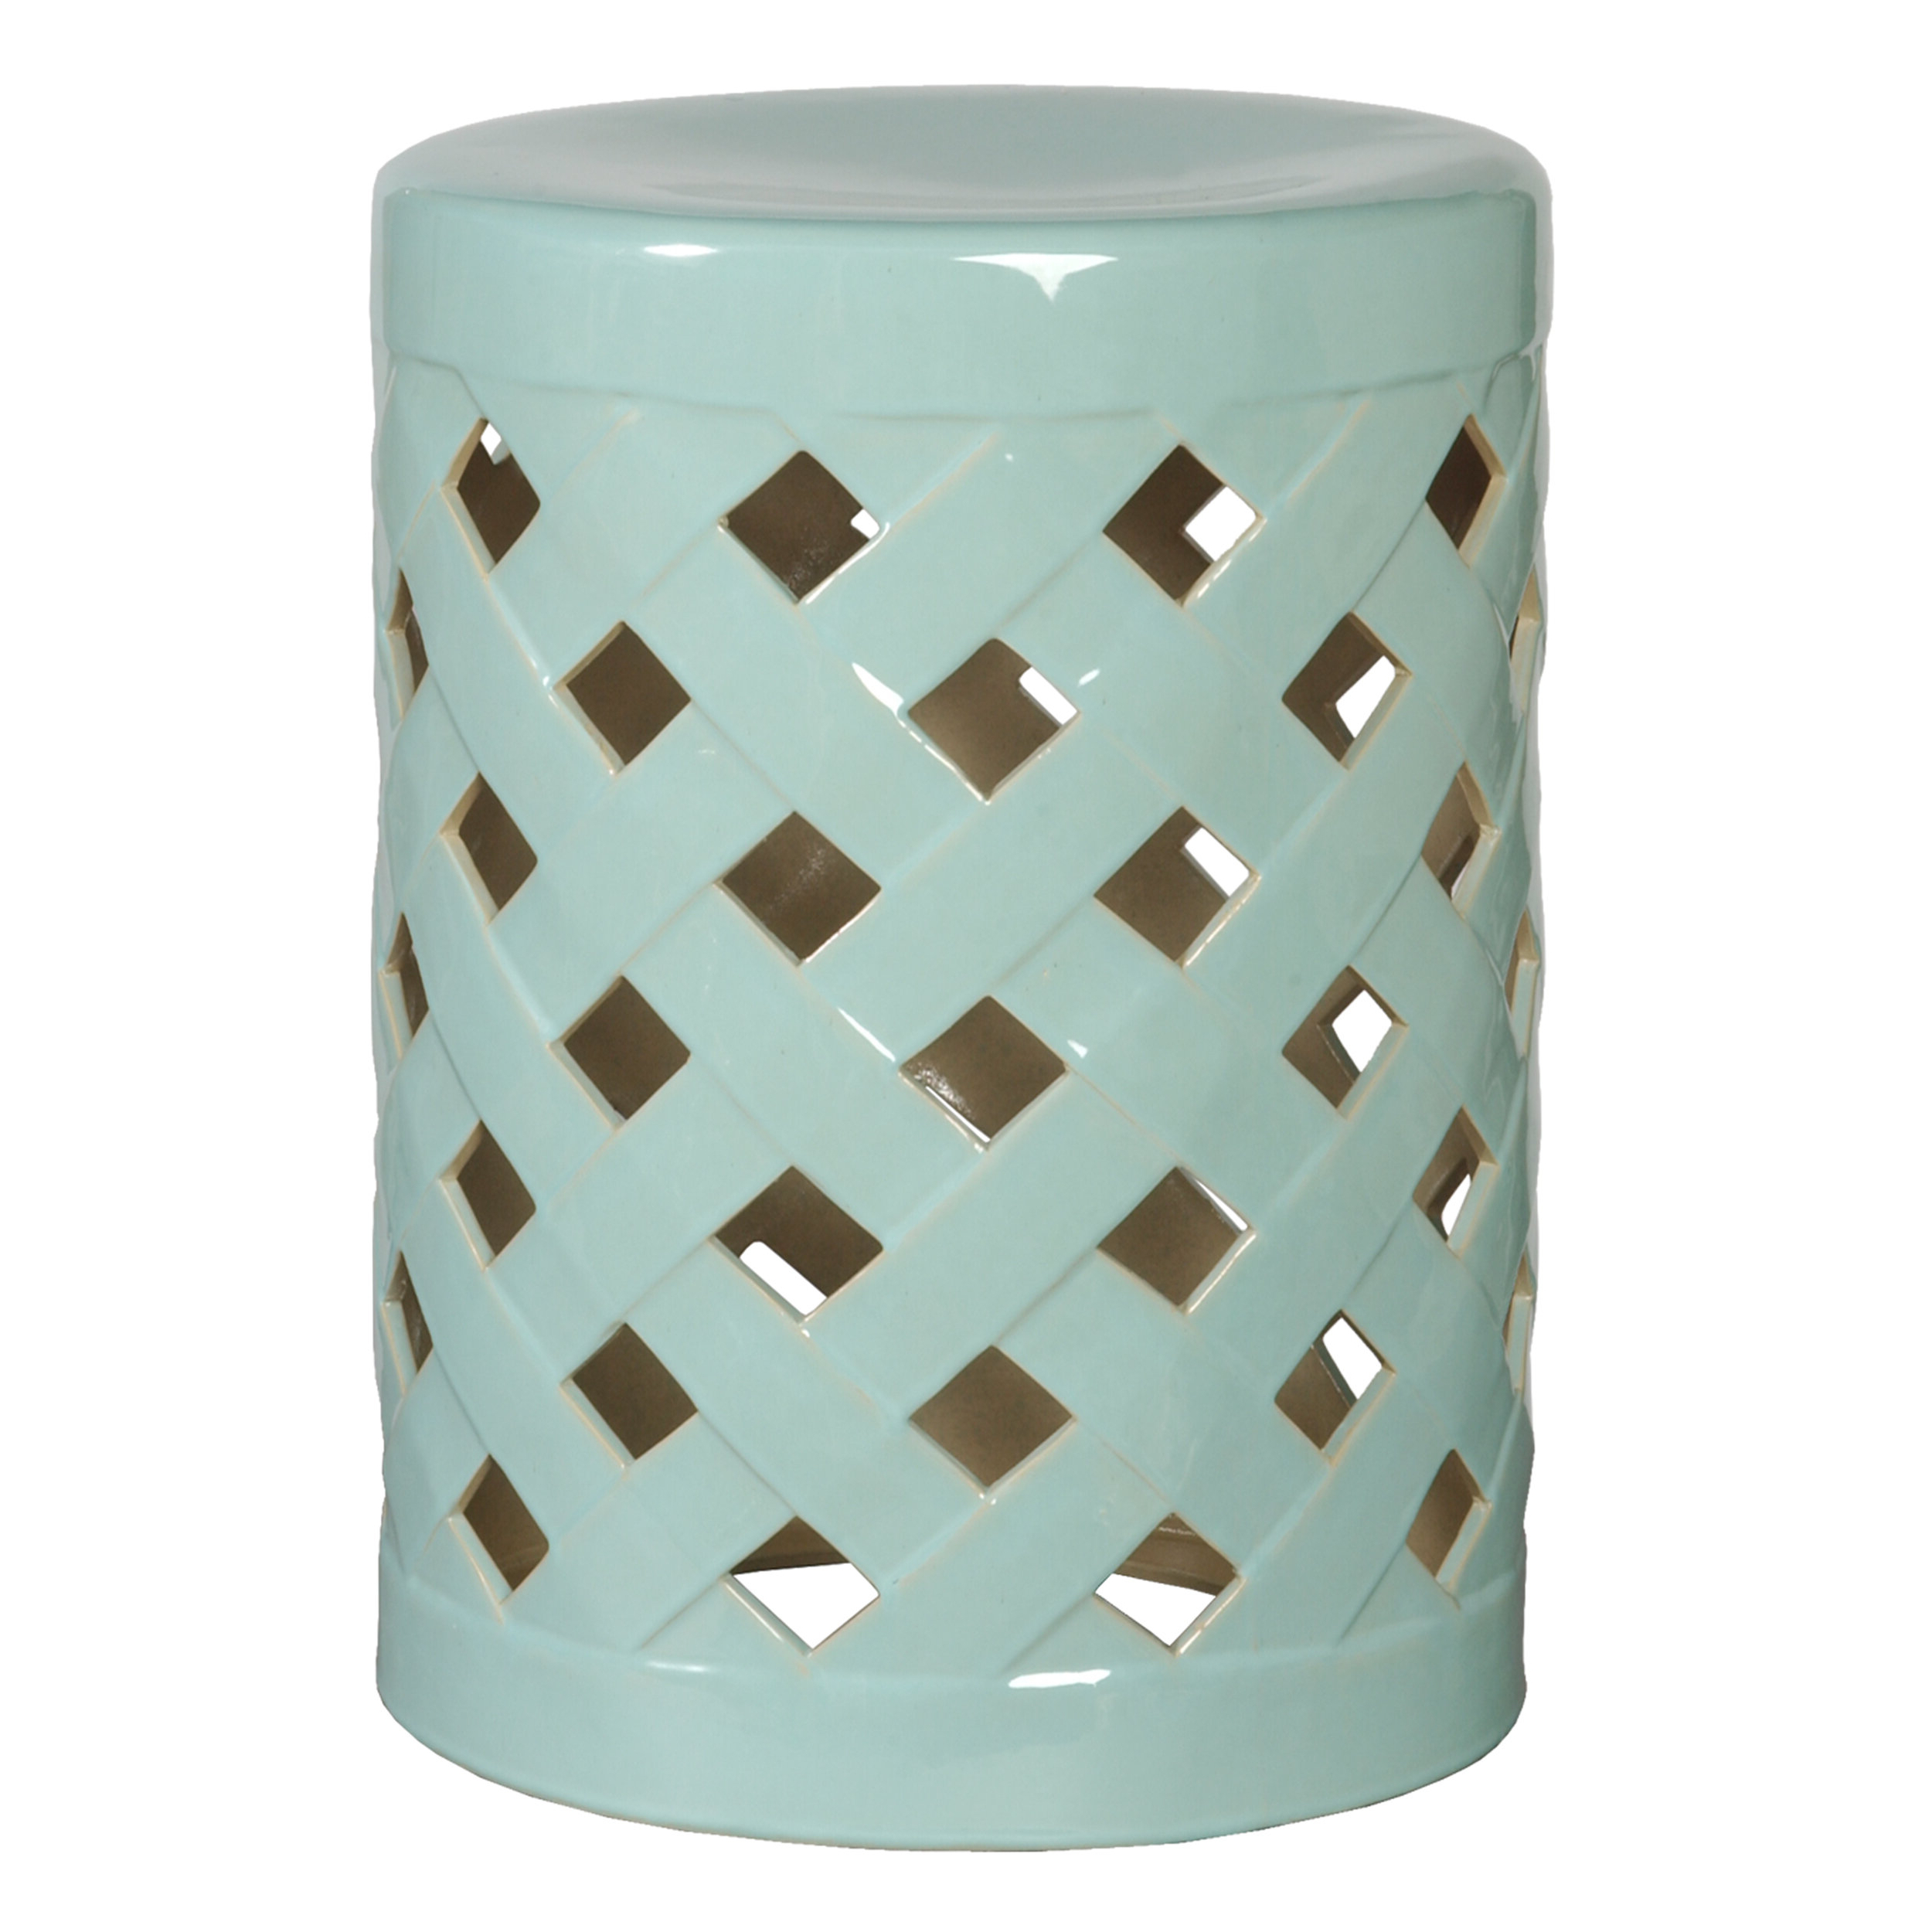 Widely Used Ormside Ceramic Garden Stool Throughout Tillia Ceramic Garden Stools (View 5 of 30)